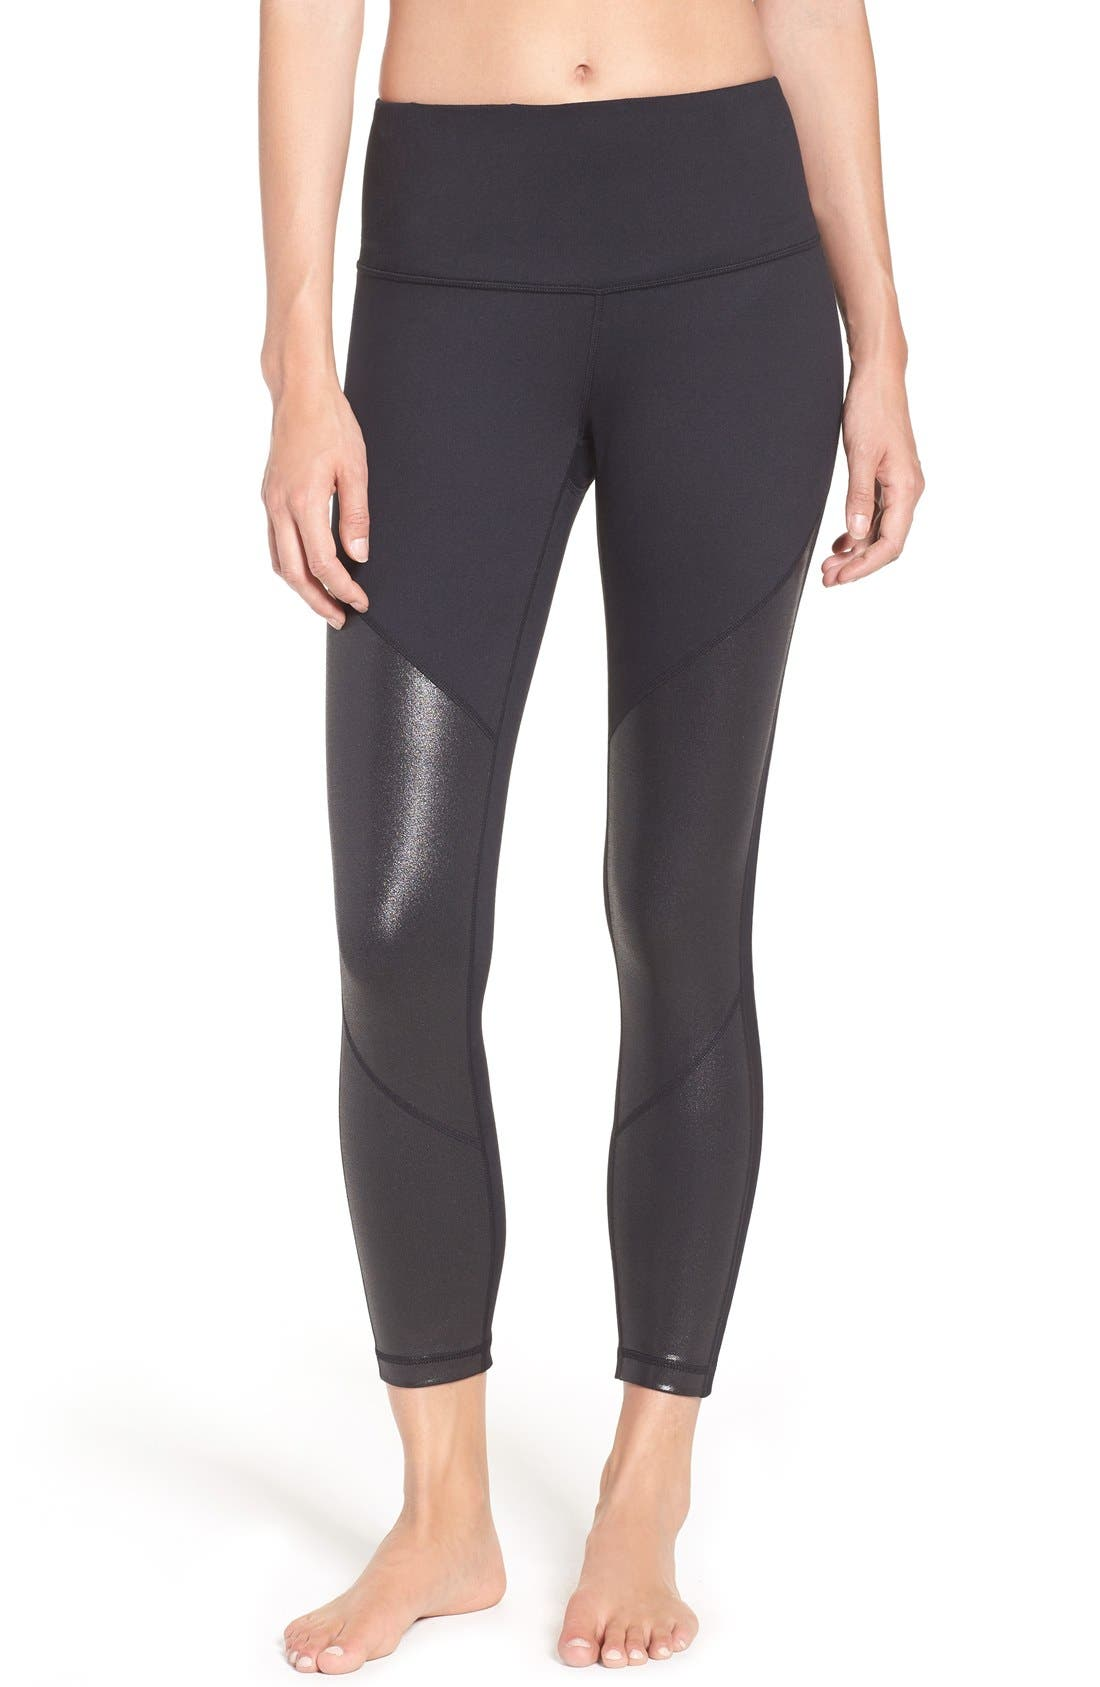 Alternate Image 1 Selected - Zella 'Mindful' High Waist Midi Crop Leggings